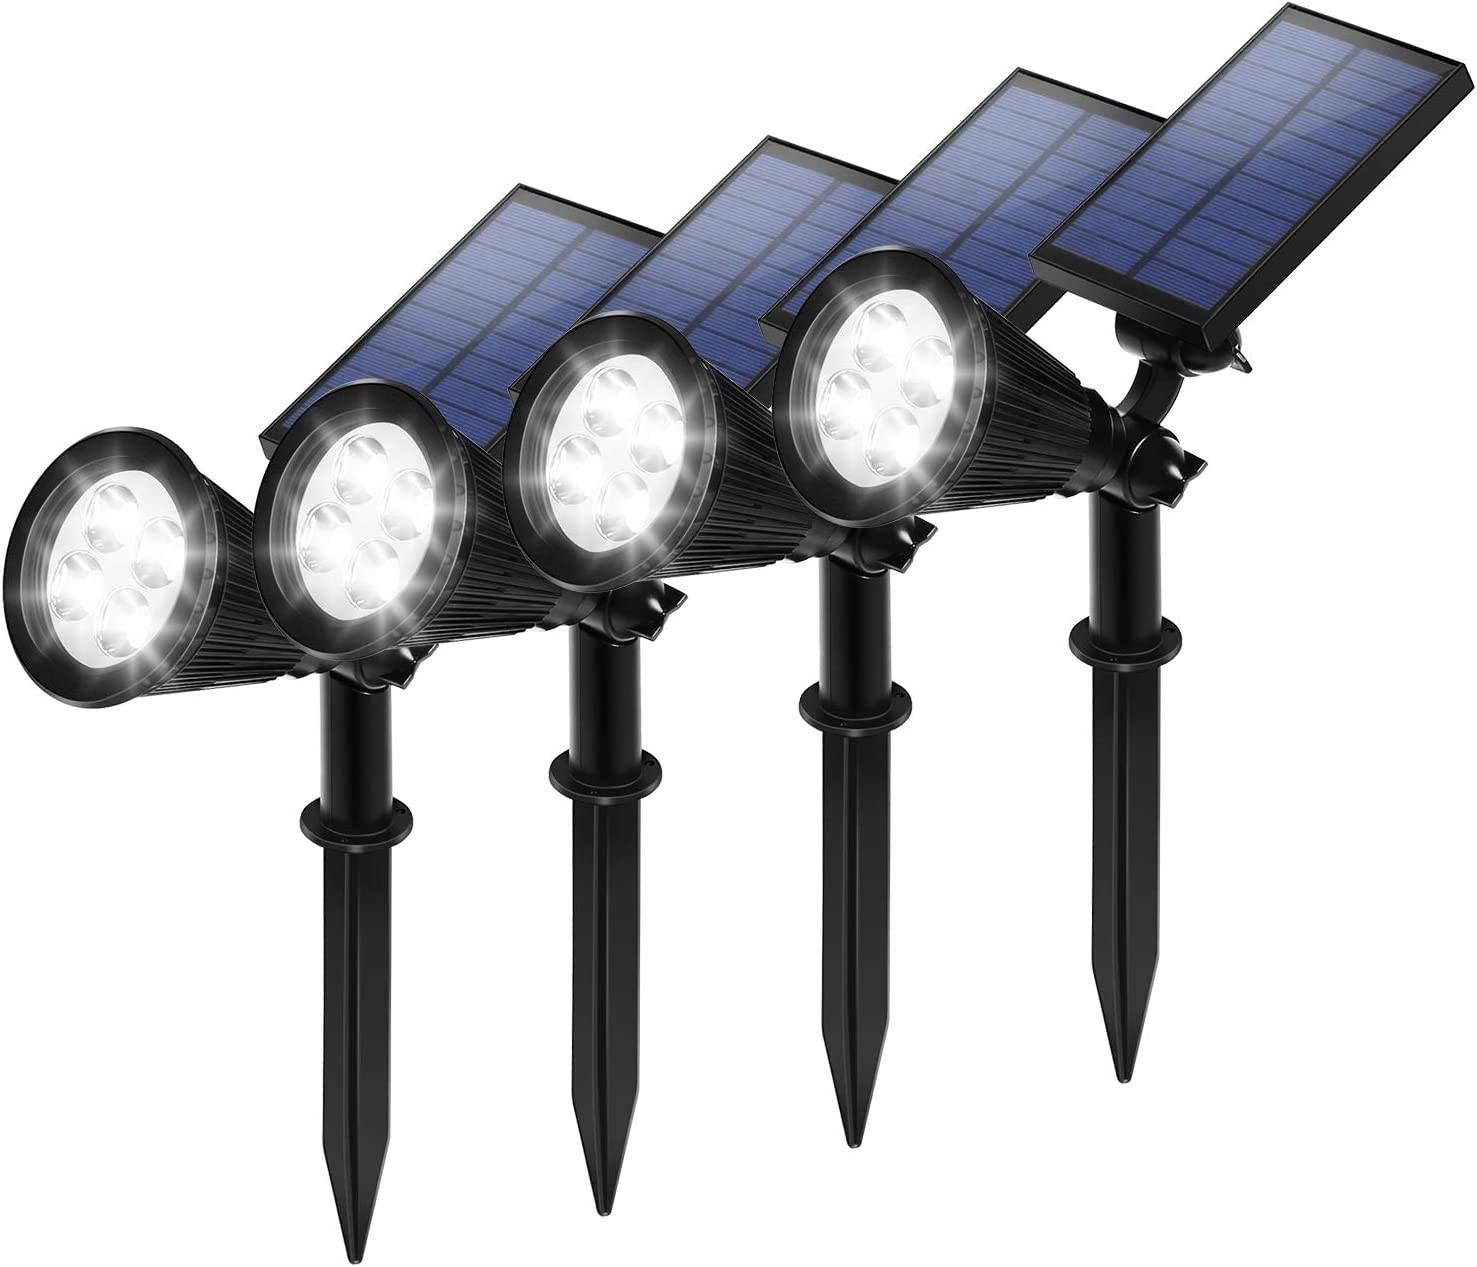 Techwood Solar lights outdoor,Upgraded Waterproof Solar Powered Spotlights,Adjustable 2-in-1 Wall Light Landscape Light,Bright and Dark Sensing Auto On/Off for Patio Yard,Garden Driveway,4 Pack(White)